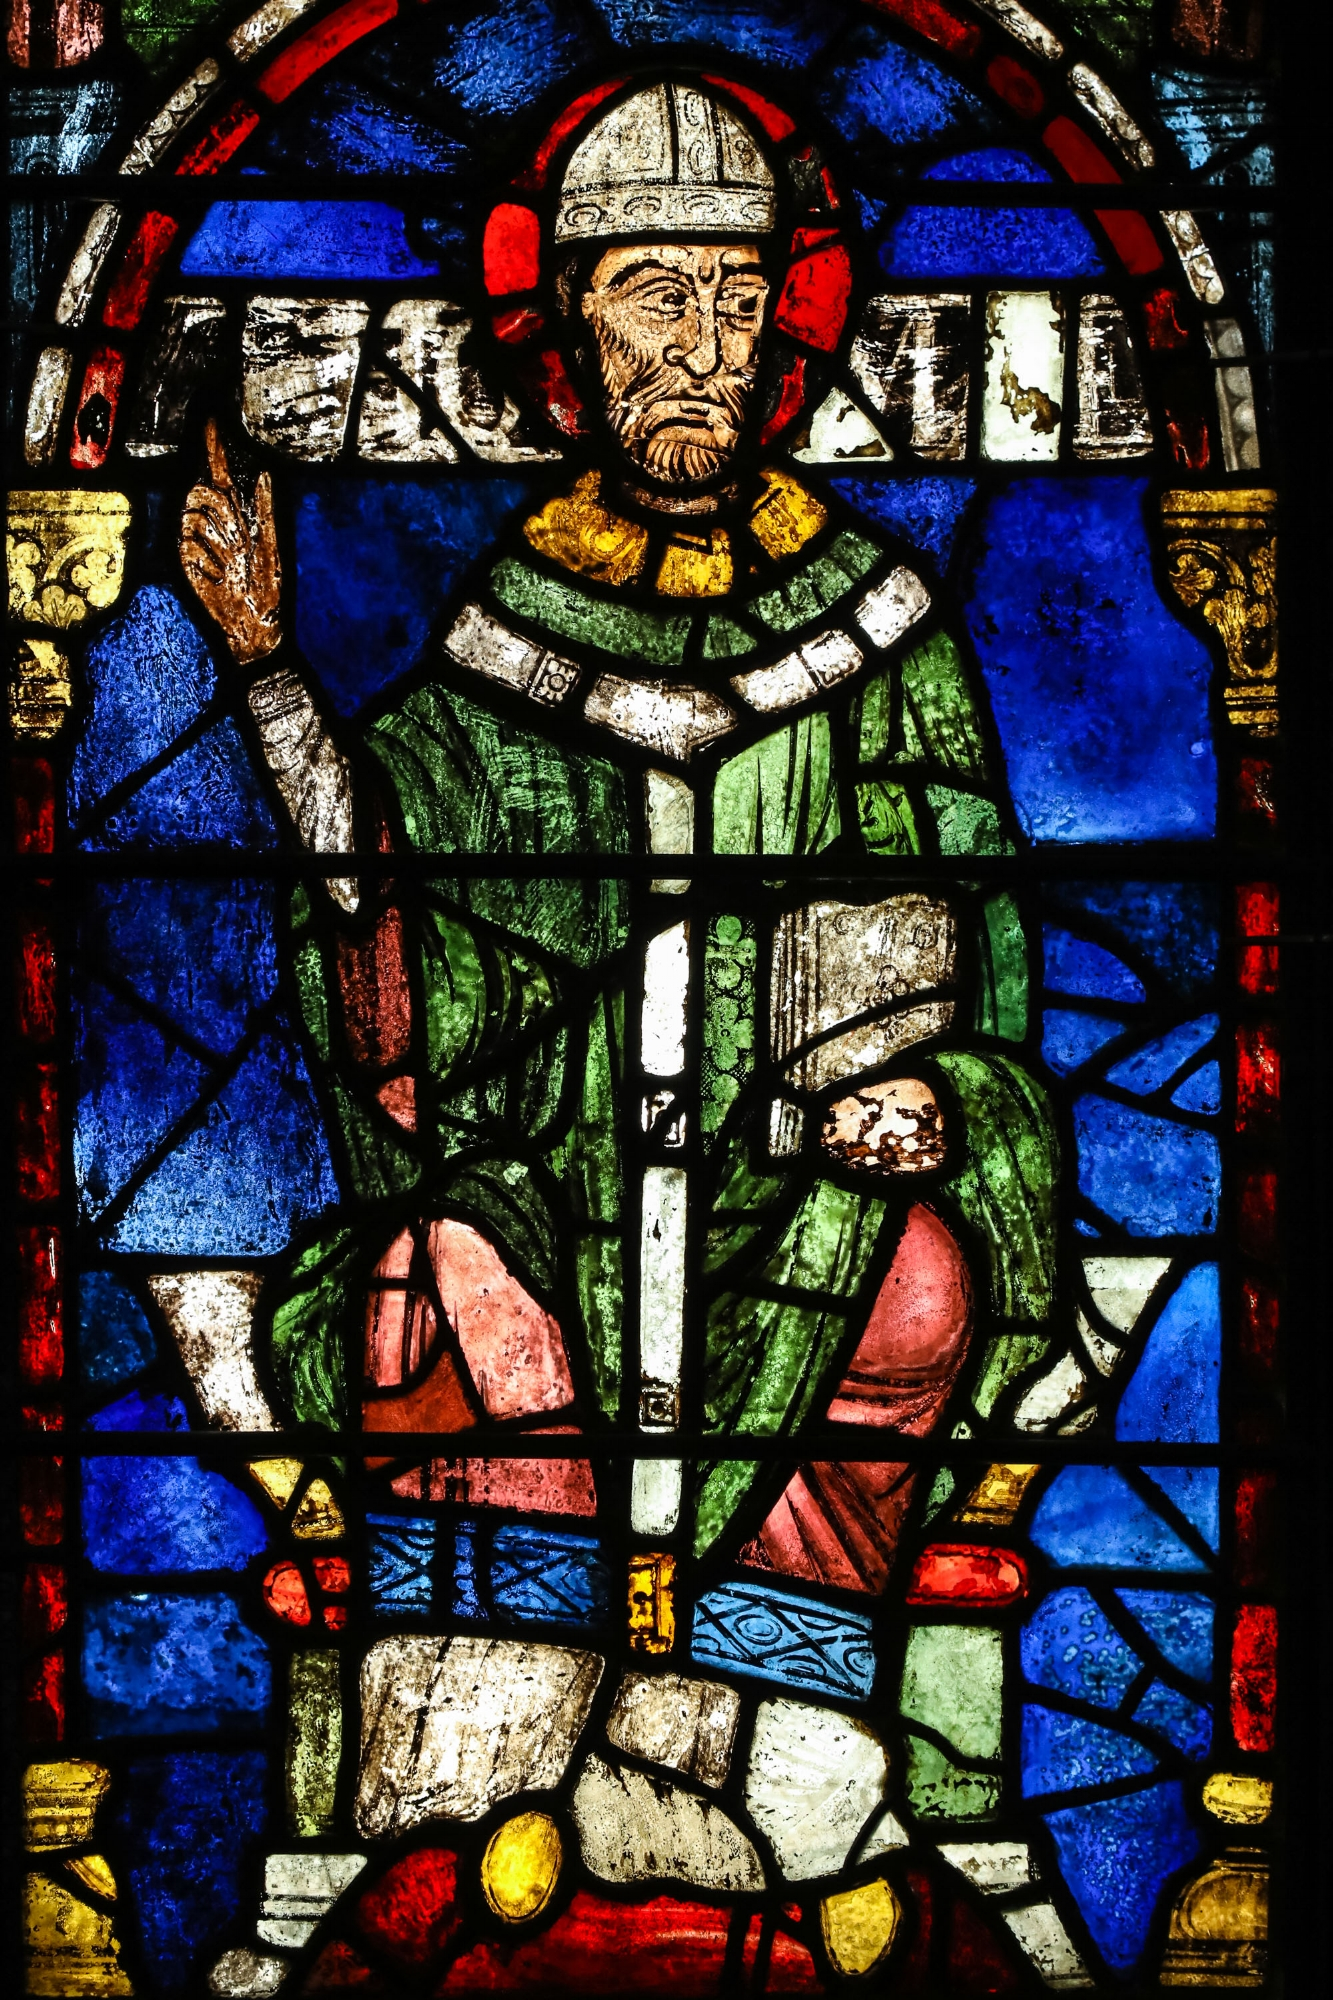 This stained glass portrait of St Thomas Becket from Canterbury cathedral isn't quite all it seems. Can you spot the tell tales?